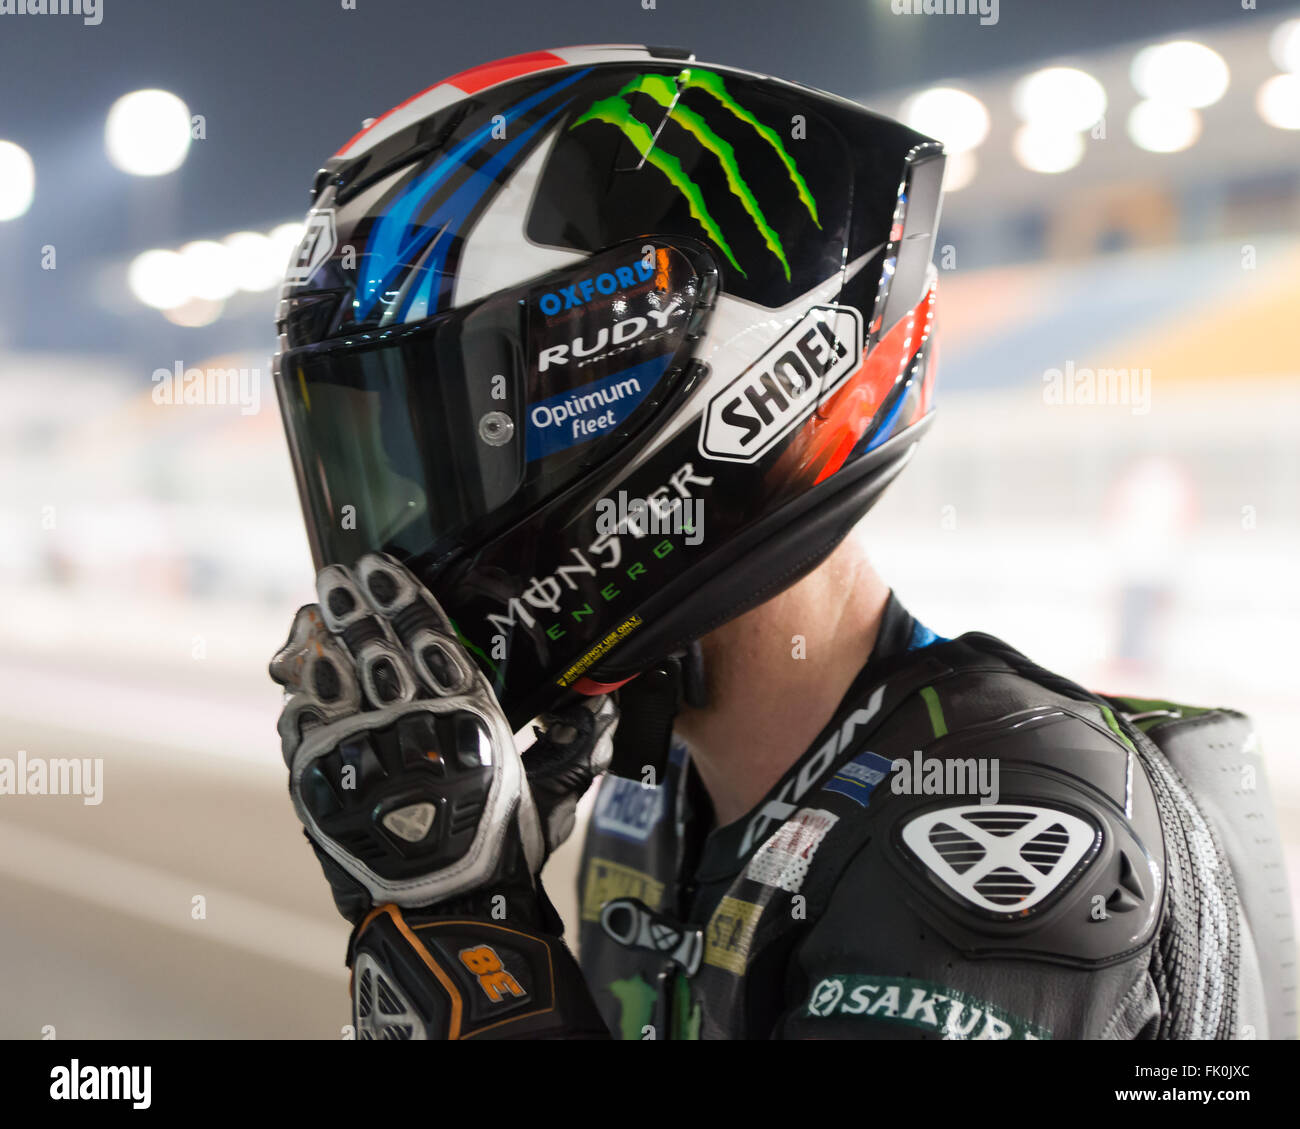 Doha, Qatar. 4th March, 2016. Bradley Smith during the final day of Stock Photo: 97745156 - Alamy